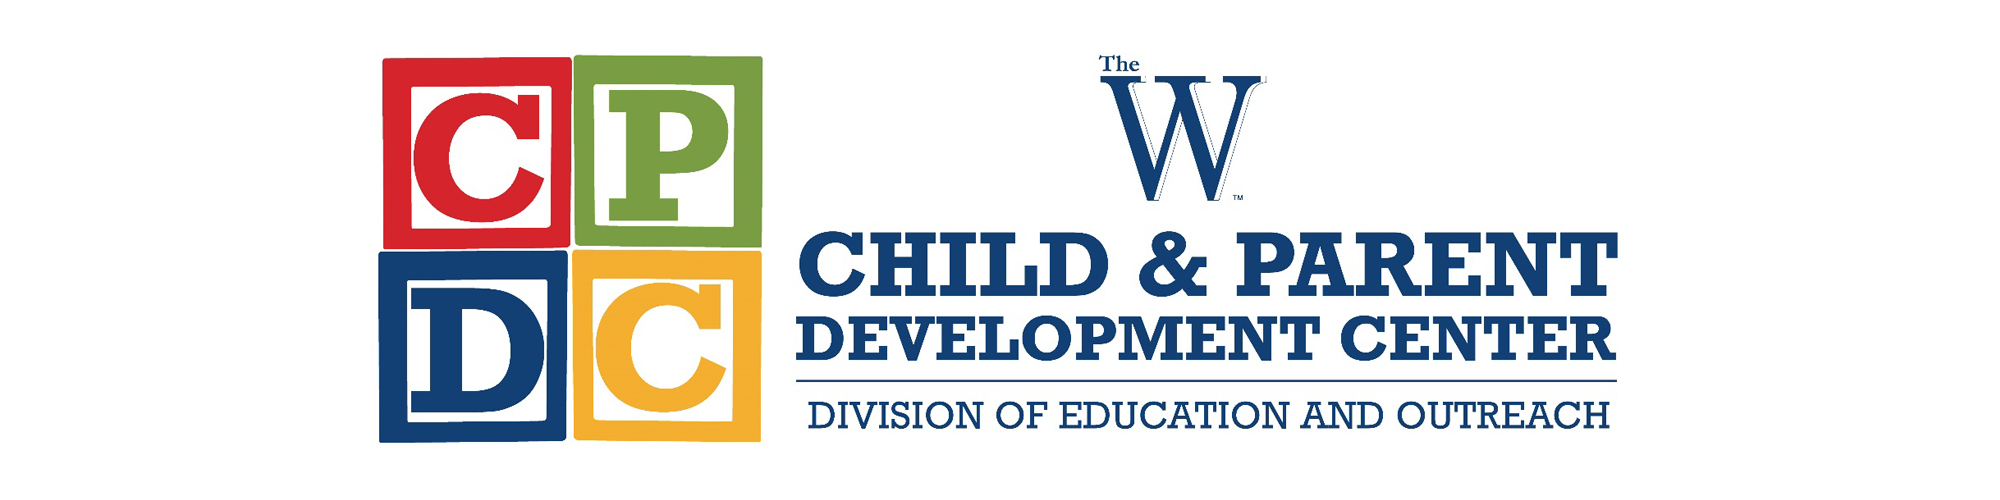 Child & Parent Development Center: Division of Education & Outreach